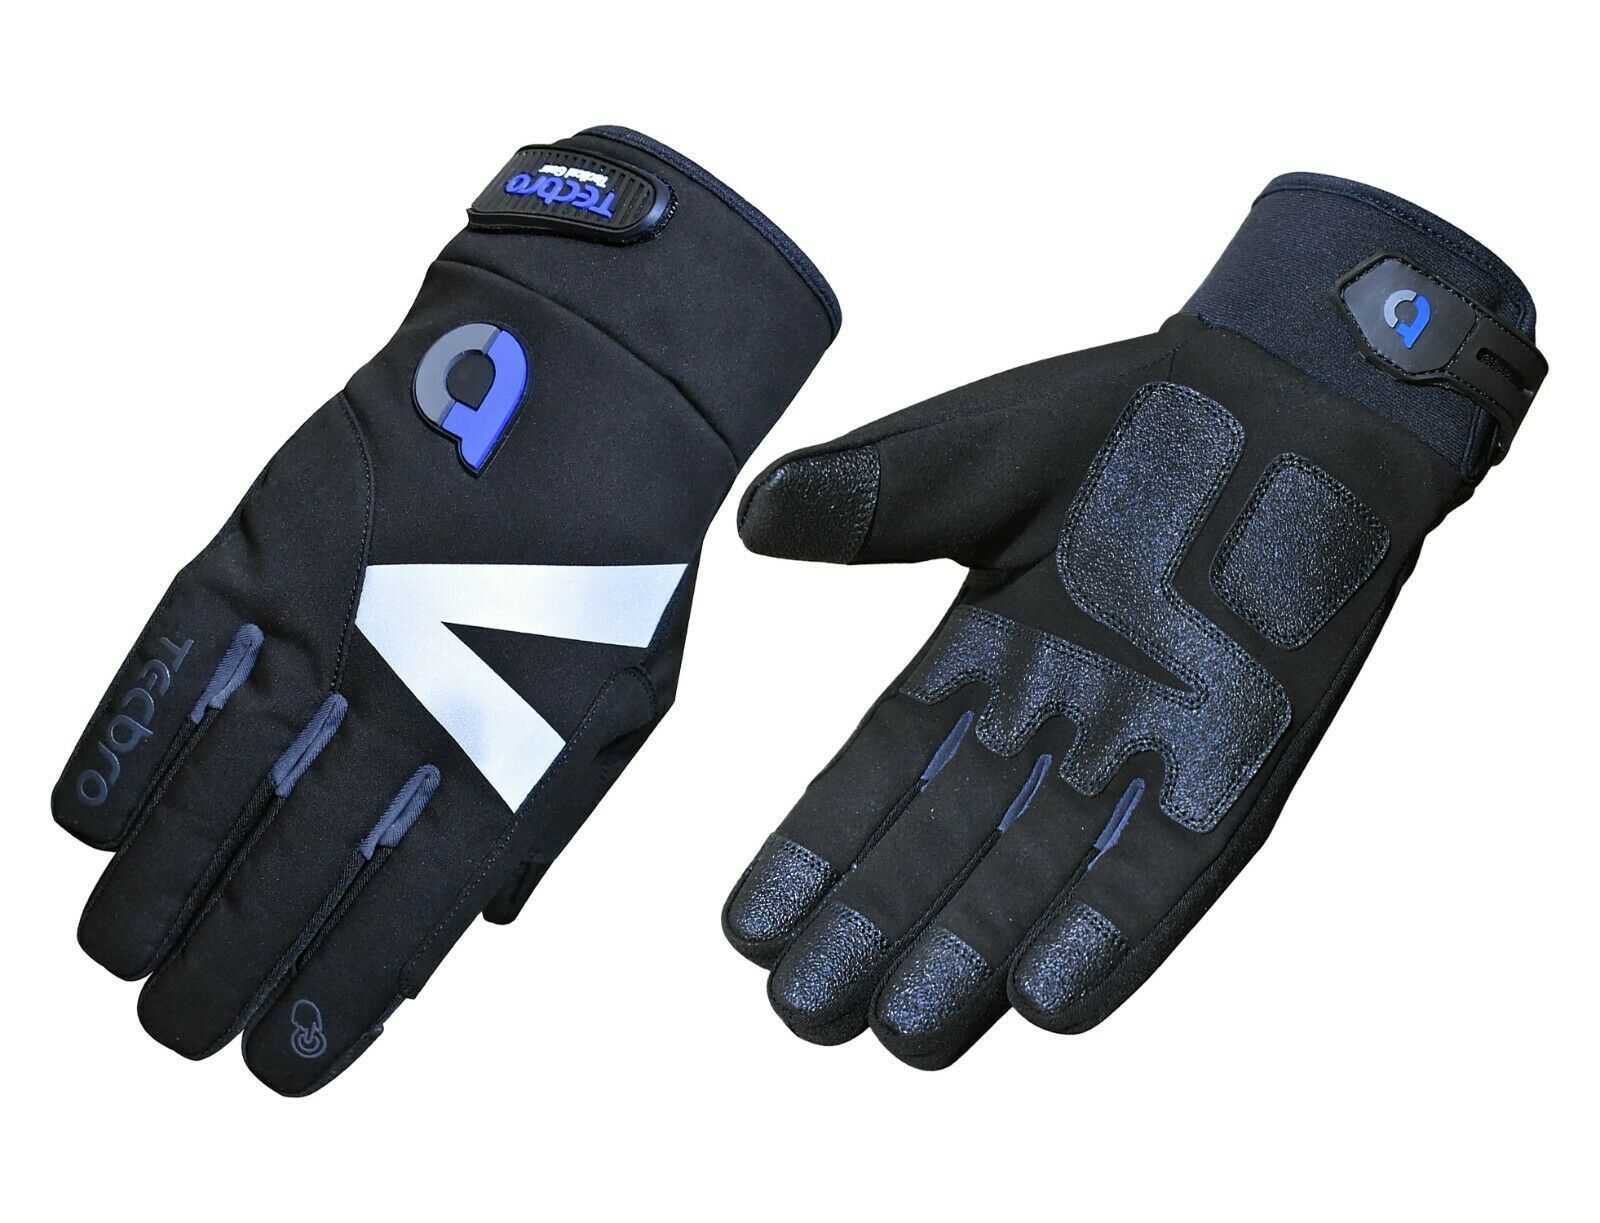 Tecbro Soft Shell Insulated Gloves with Reflective Panels & Vinyl Abrasion Pads